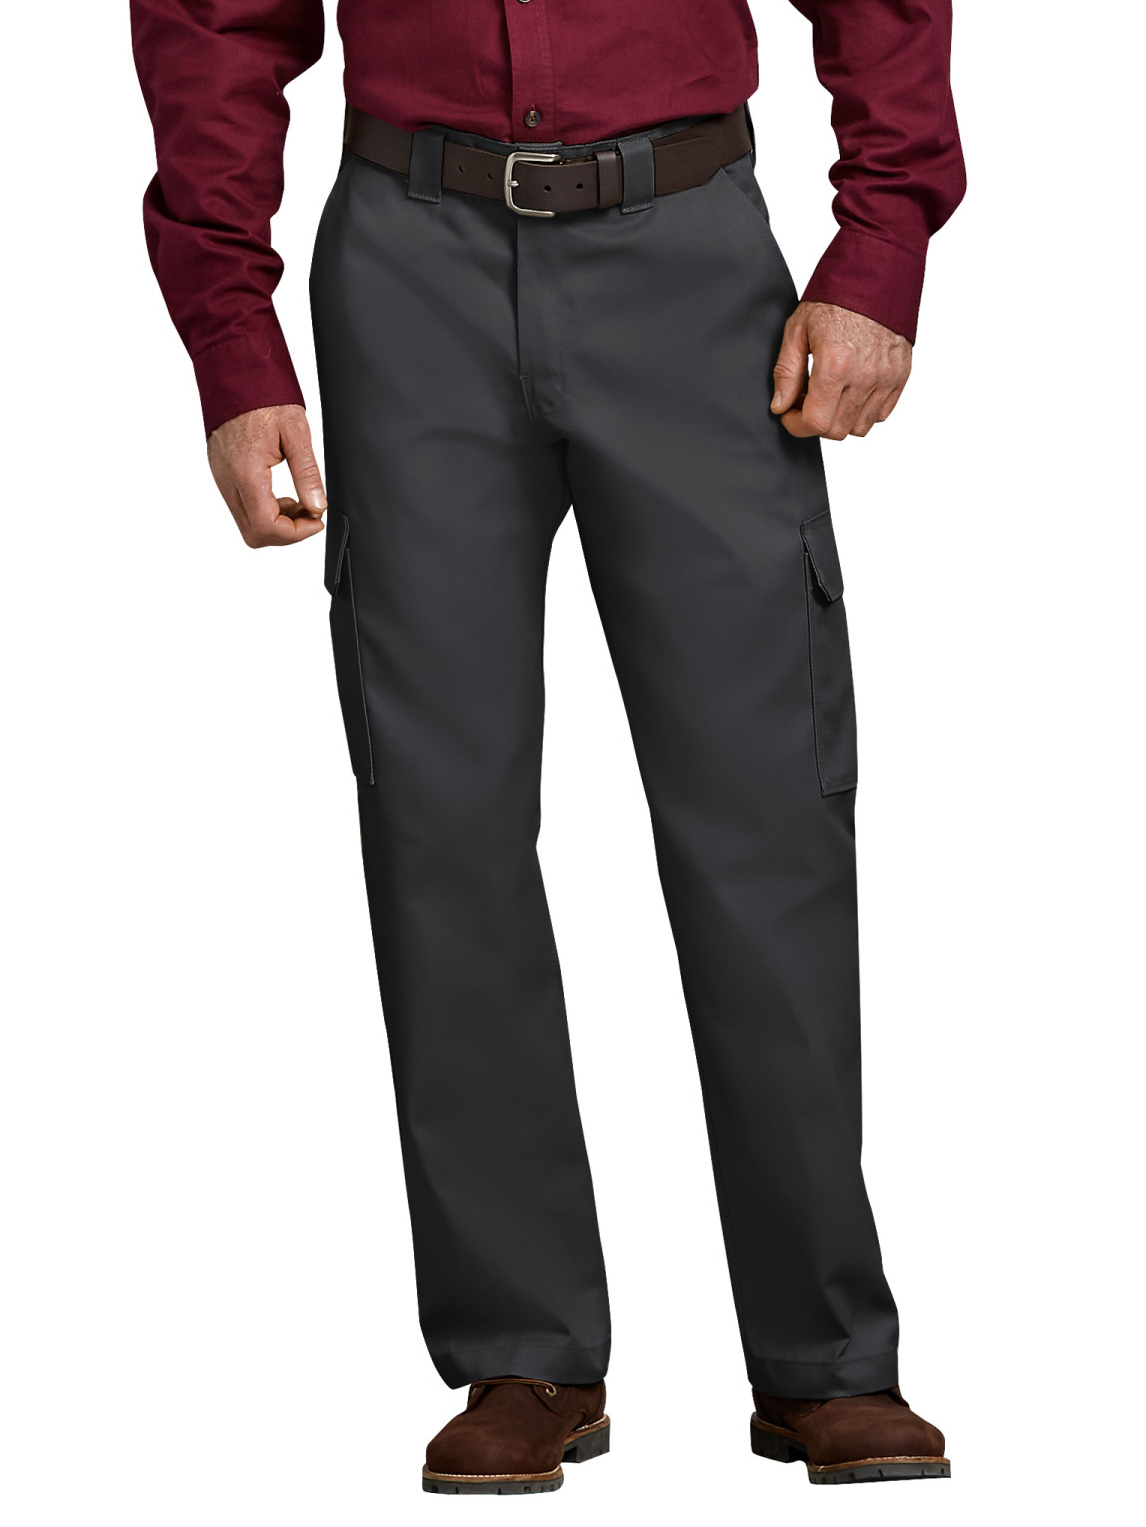 Men's Relaxed Fit Straight Leg Cargo Work Pants